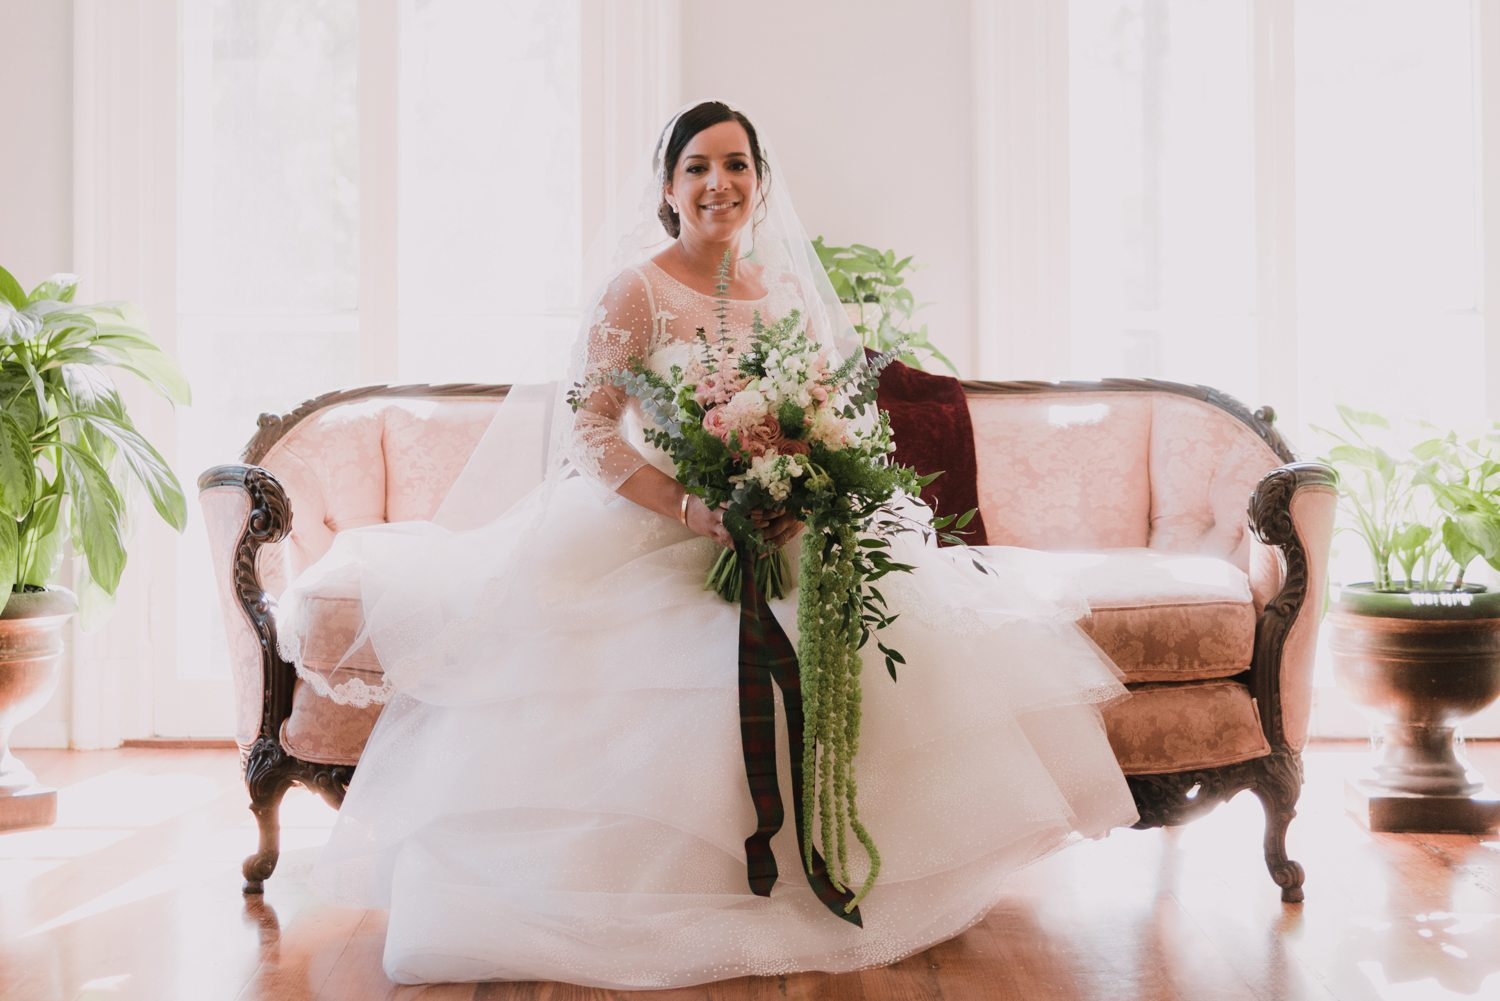 Bride sitting on a couch holding bouquet